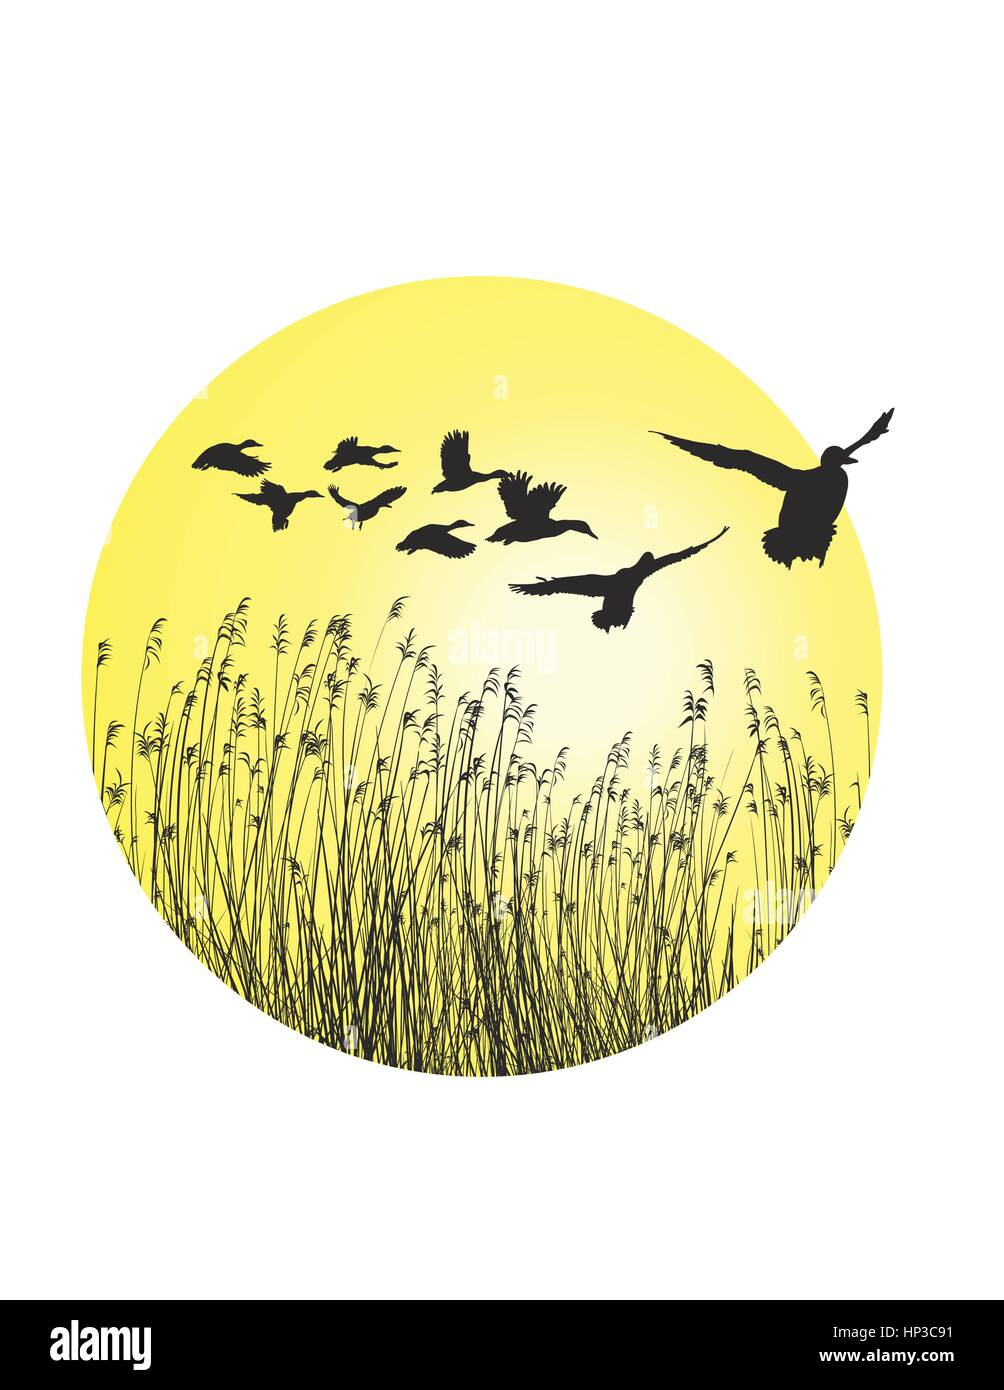 Flying Ducks Cut Out Stock Images & Pictures - Alamy